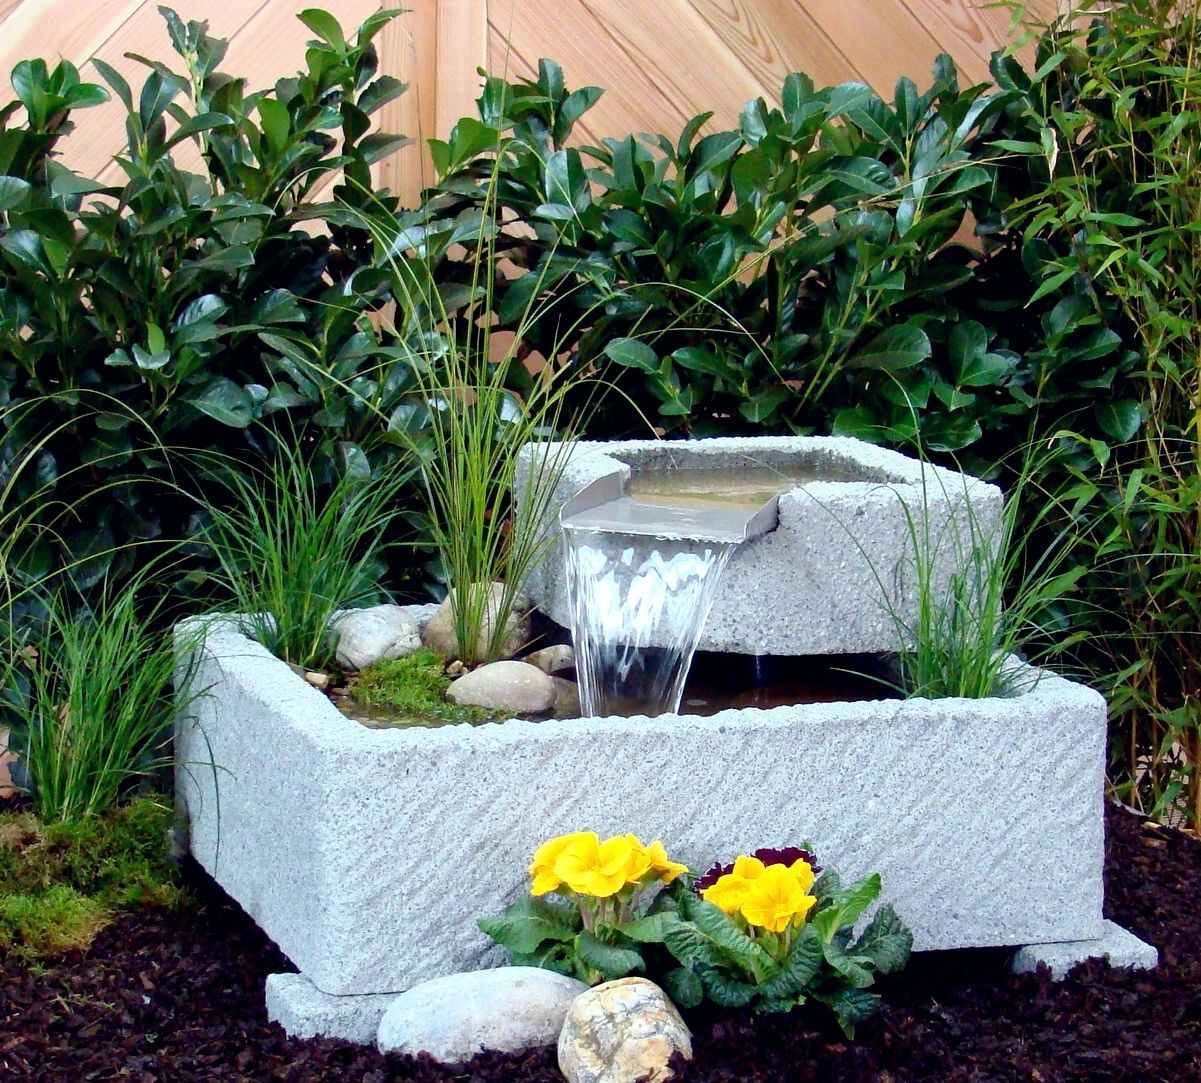 springbrunnen brunnen wasserspiel granitwerkstein stein 118kg living garden. Black Bedroom Furniture Sets. Home Design Ideas